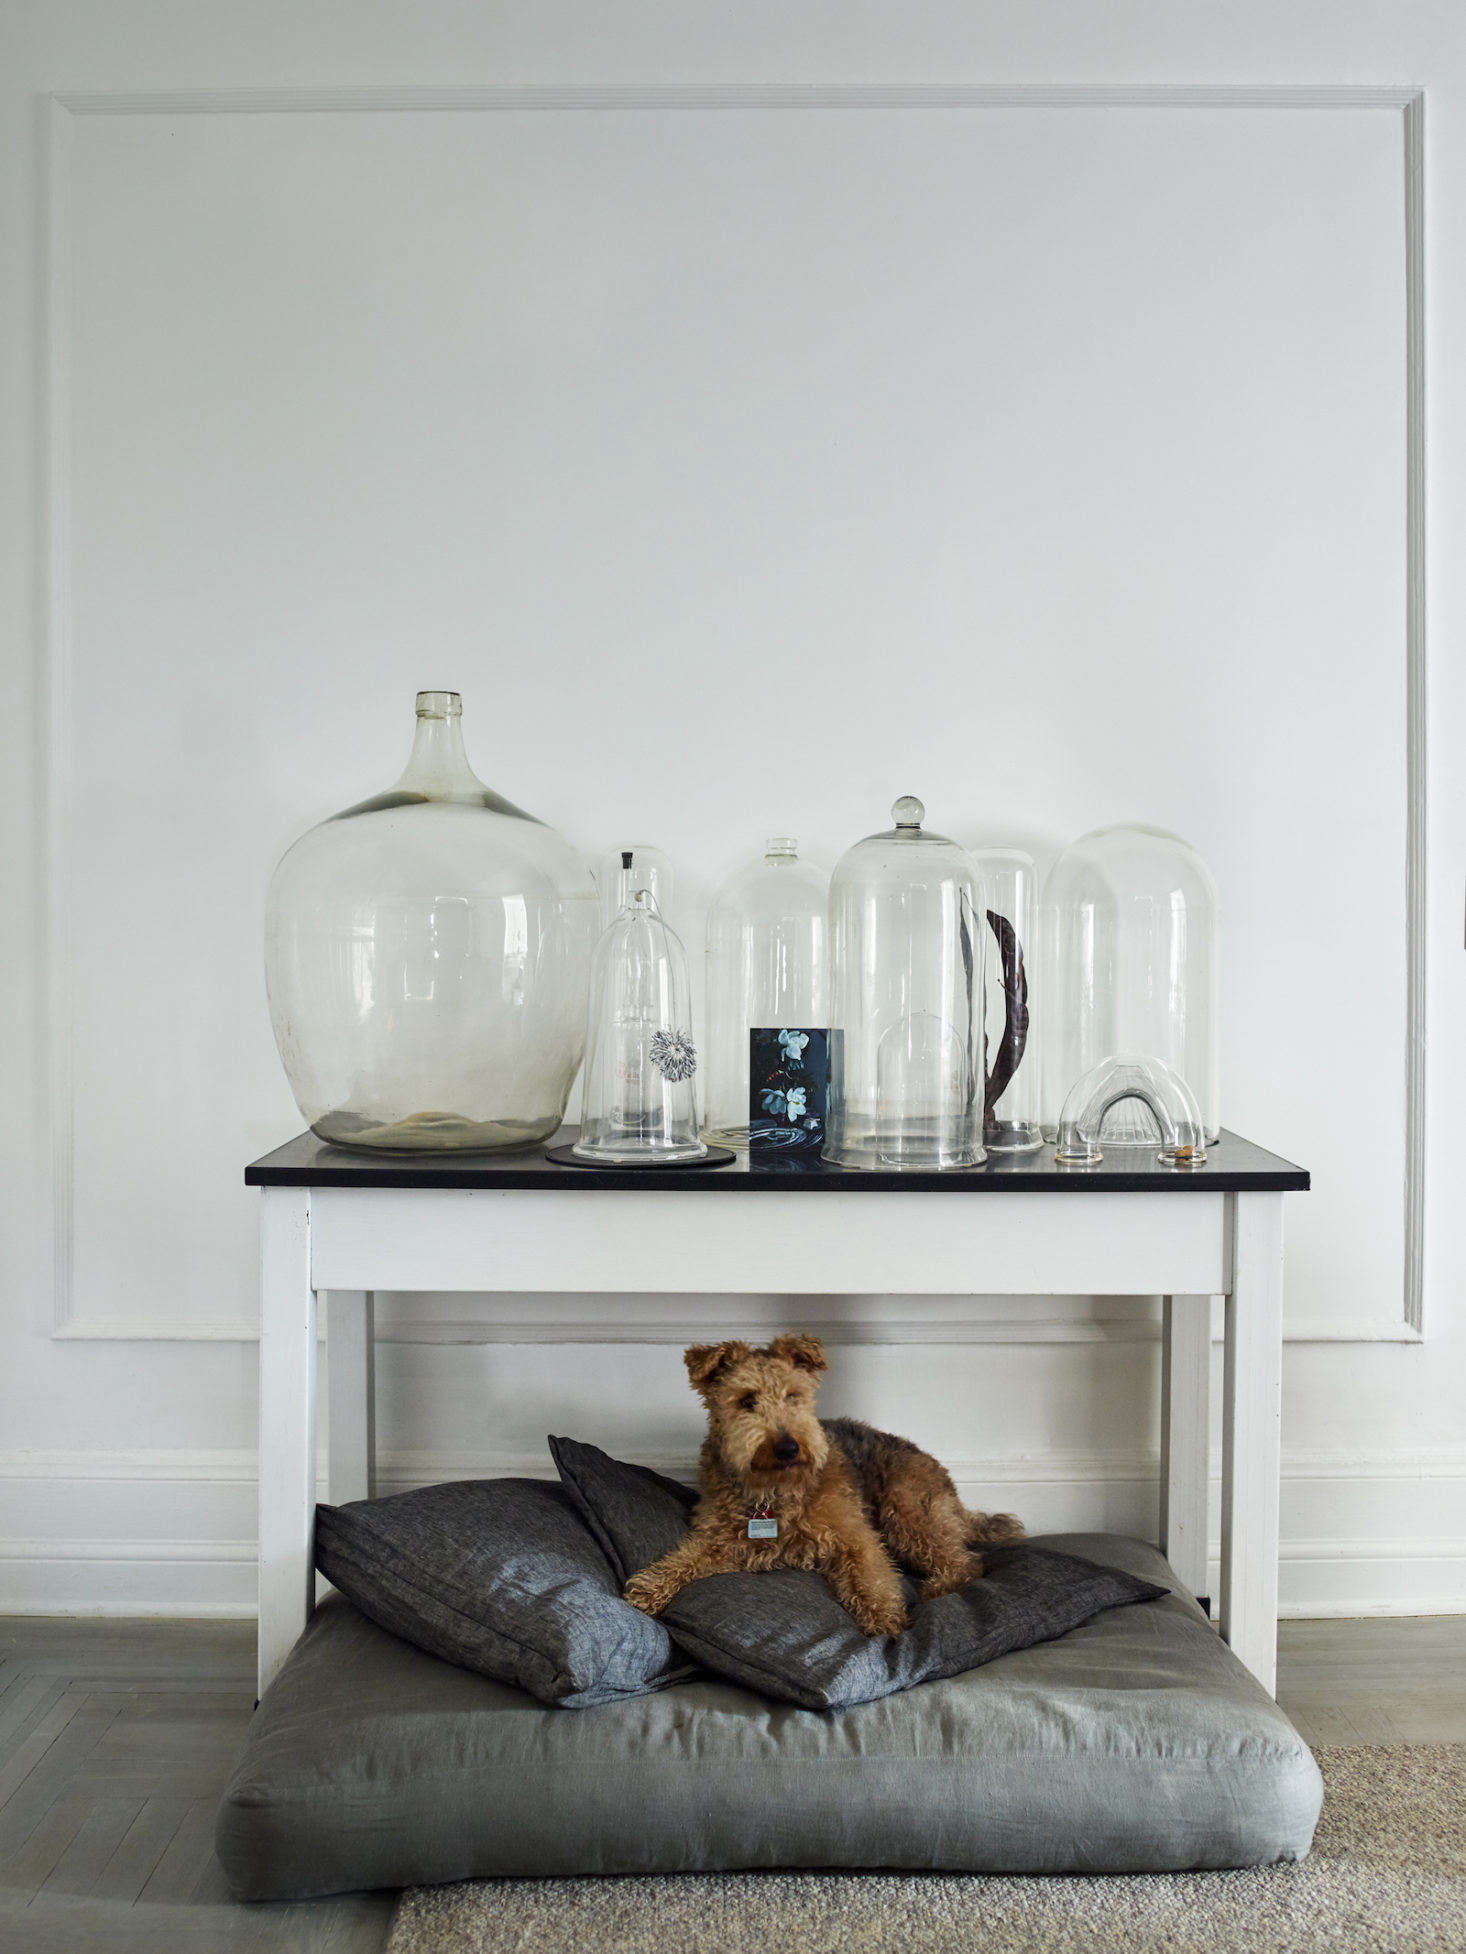 Rusty relaxes on his cushioned perch. Above him is a collection of cloches (and one giant glass jug), all sourced from various junk shops in the UK; the table on which they sit is an eBay score. The hardwood floor throughout the home is original to the apartment, but Axe and Hays had it sanded, popped (a process that opens the grain in wood flooring), primed with lye (which further enhances the grain), then stained with white oil for a washed-gray look.